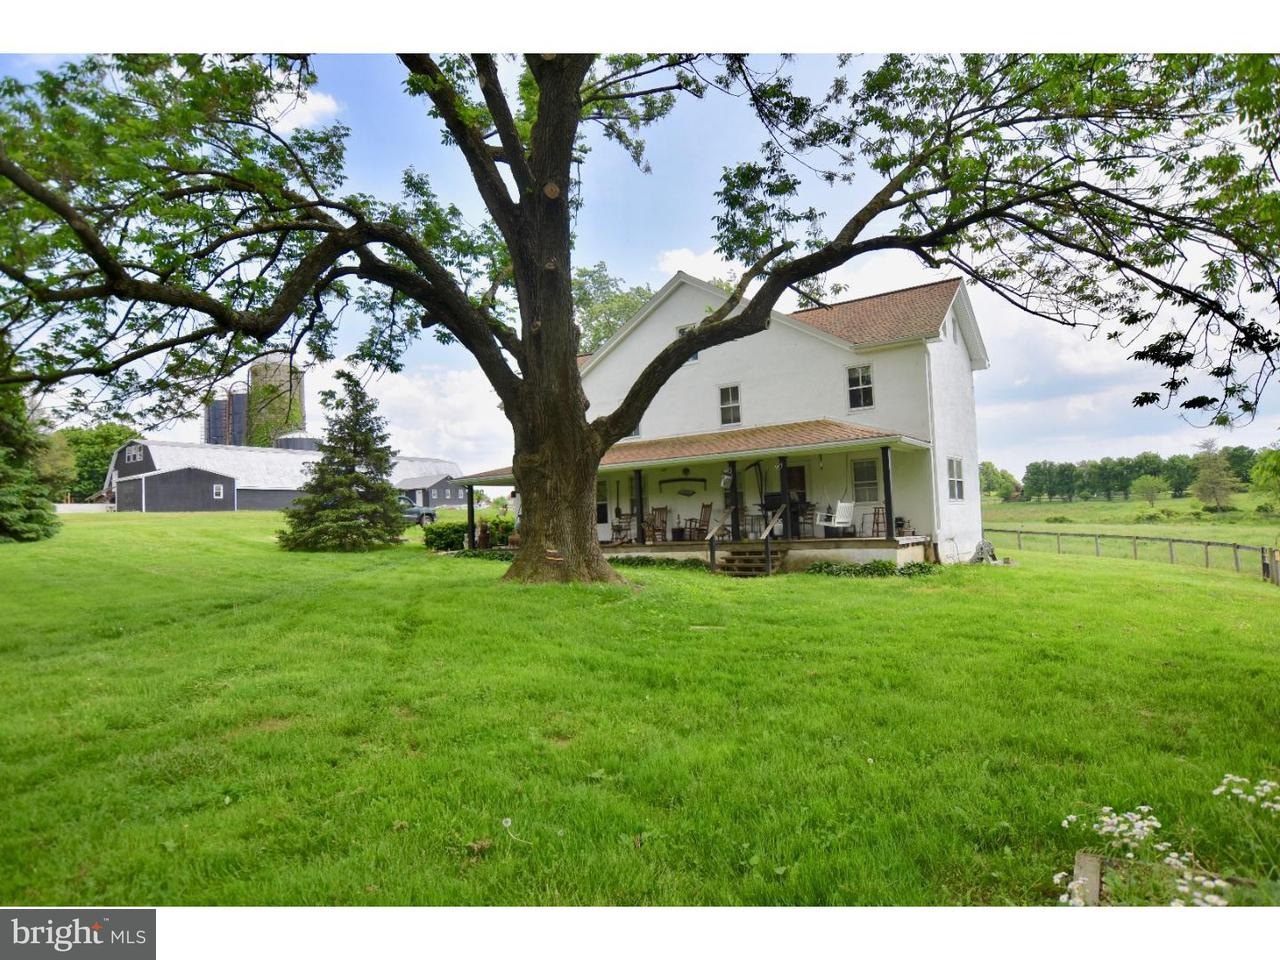 Single Family Home for Sale at 261 BAKER Road Cochranville, Pennsylvania 19330 United States